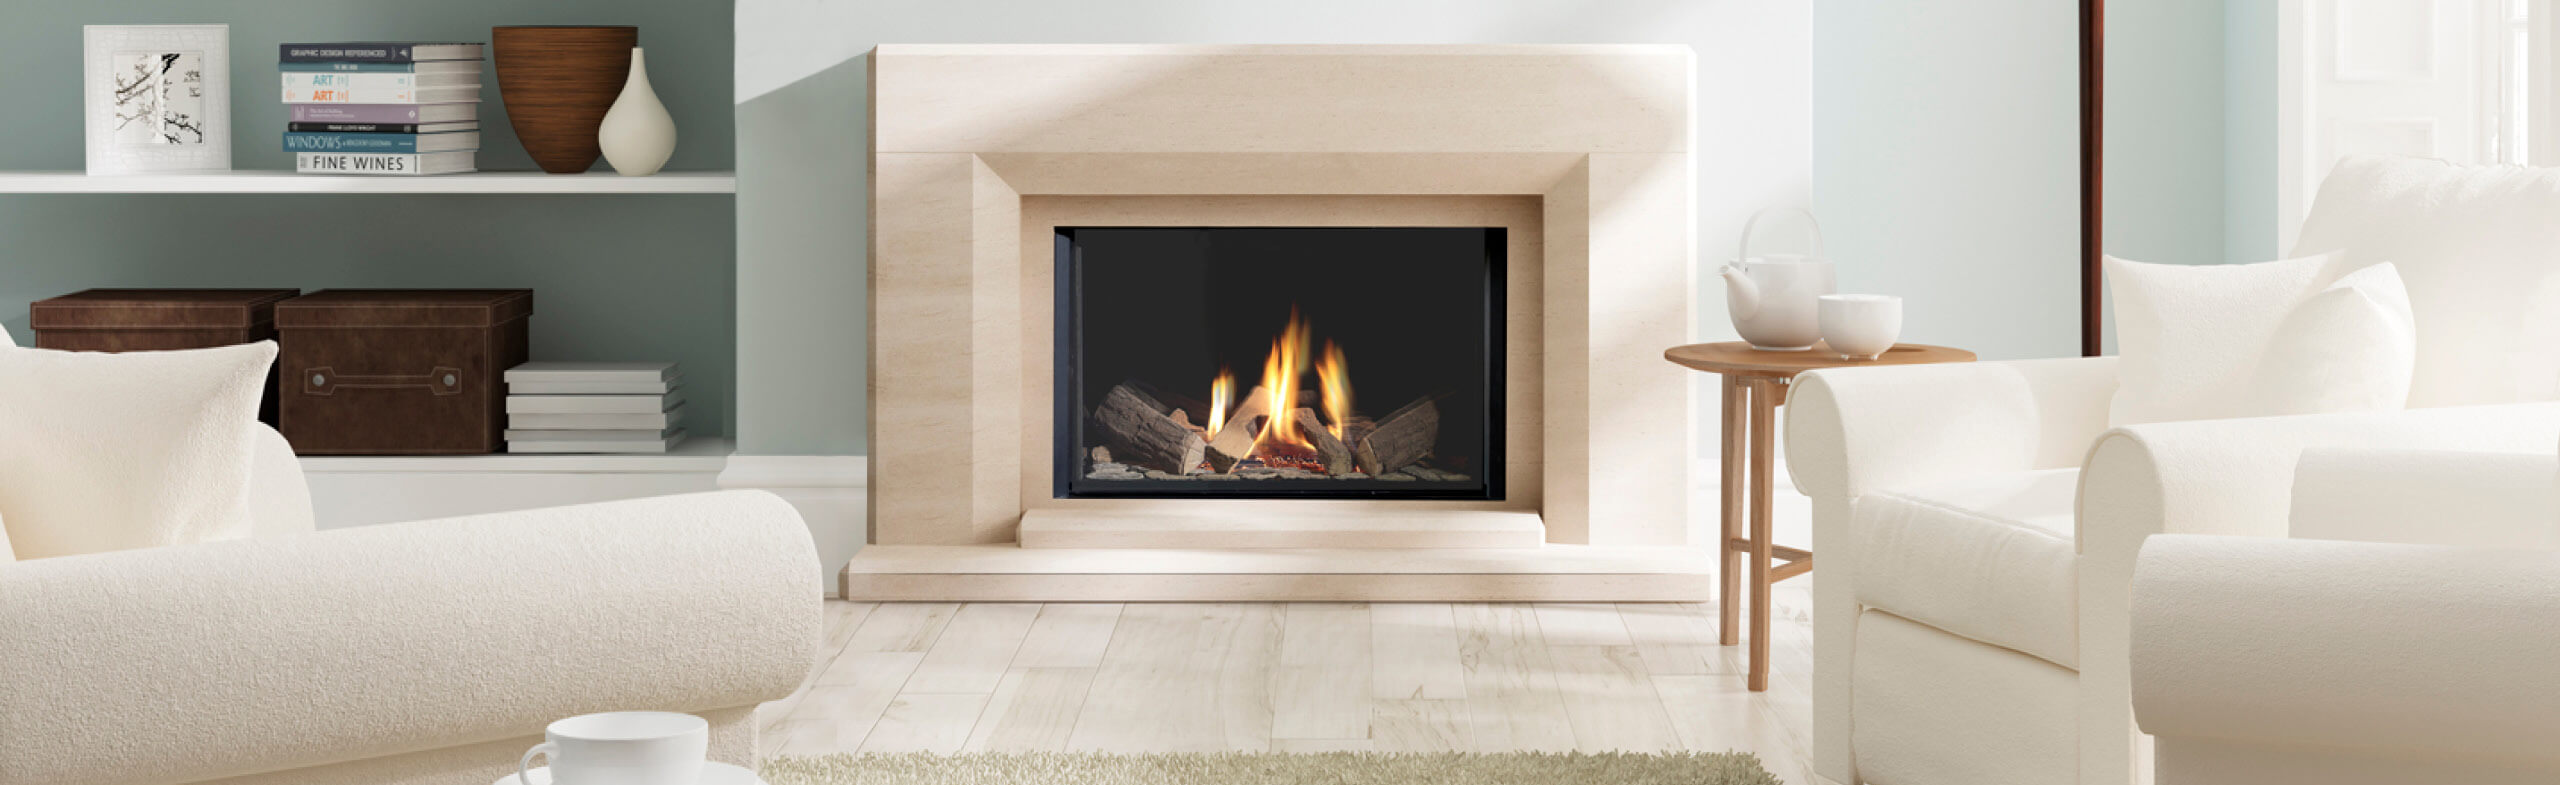 Fireplace Finesse Bourne